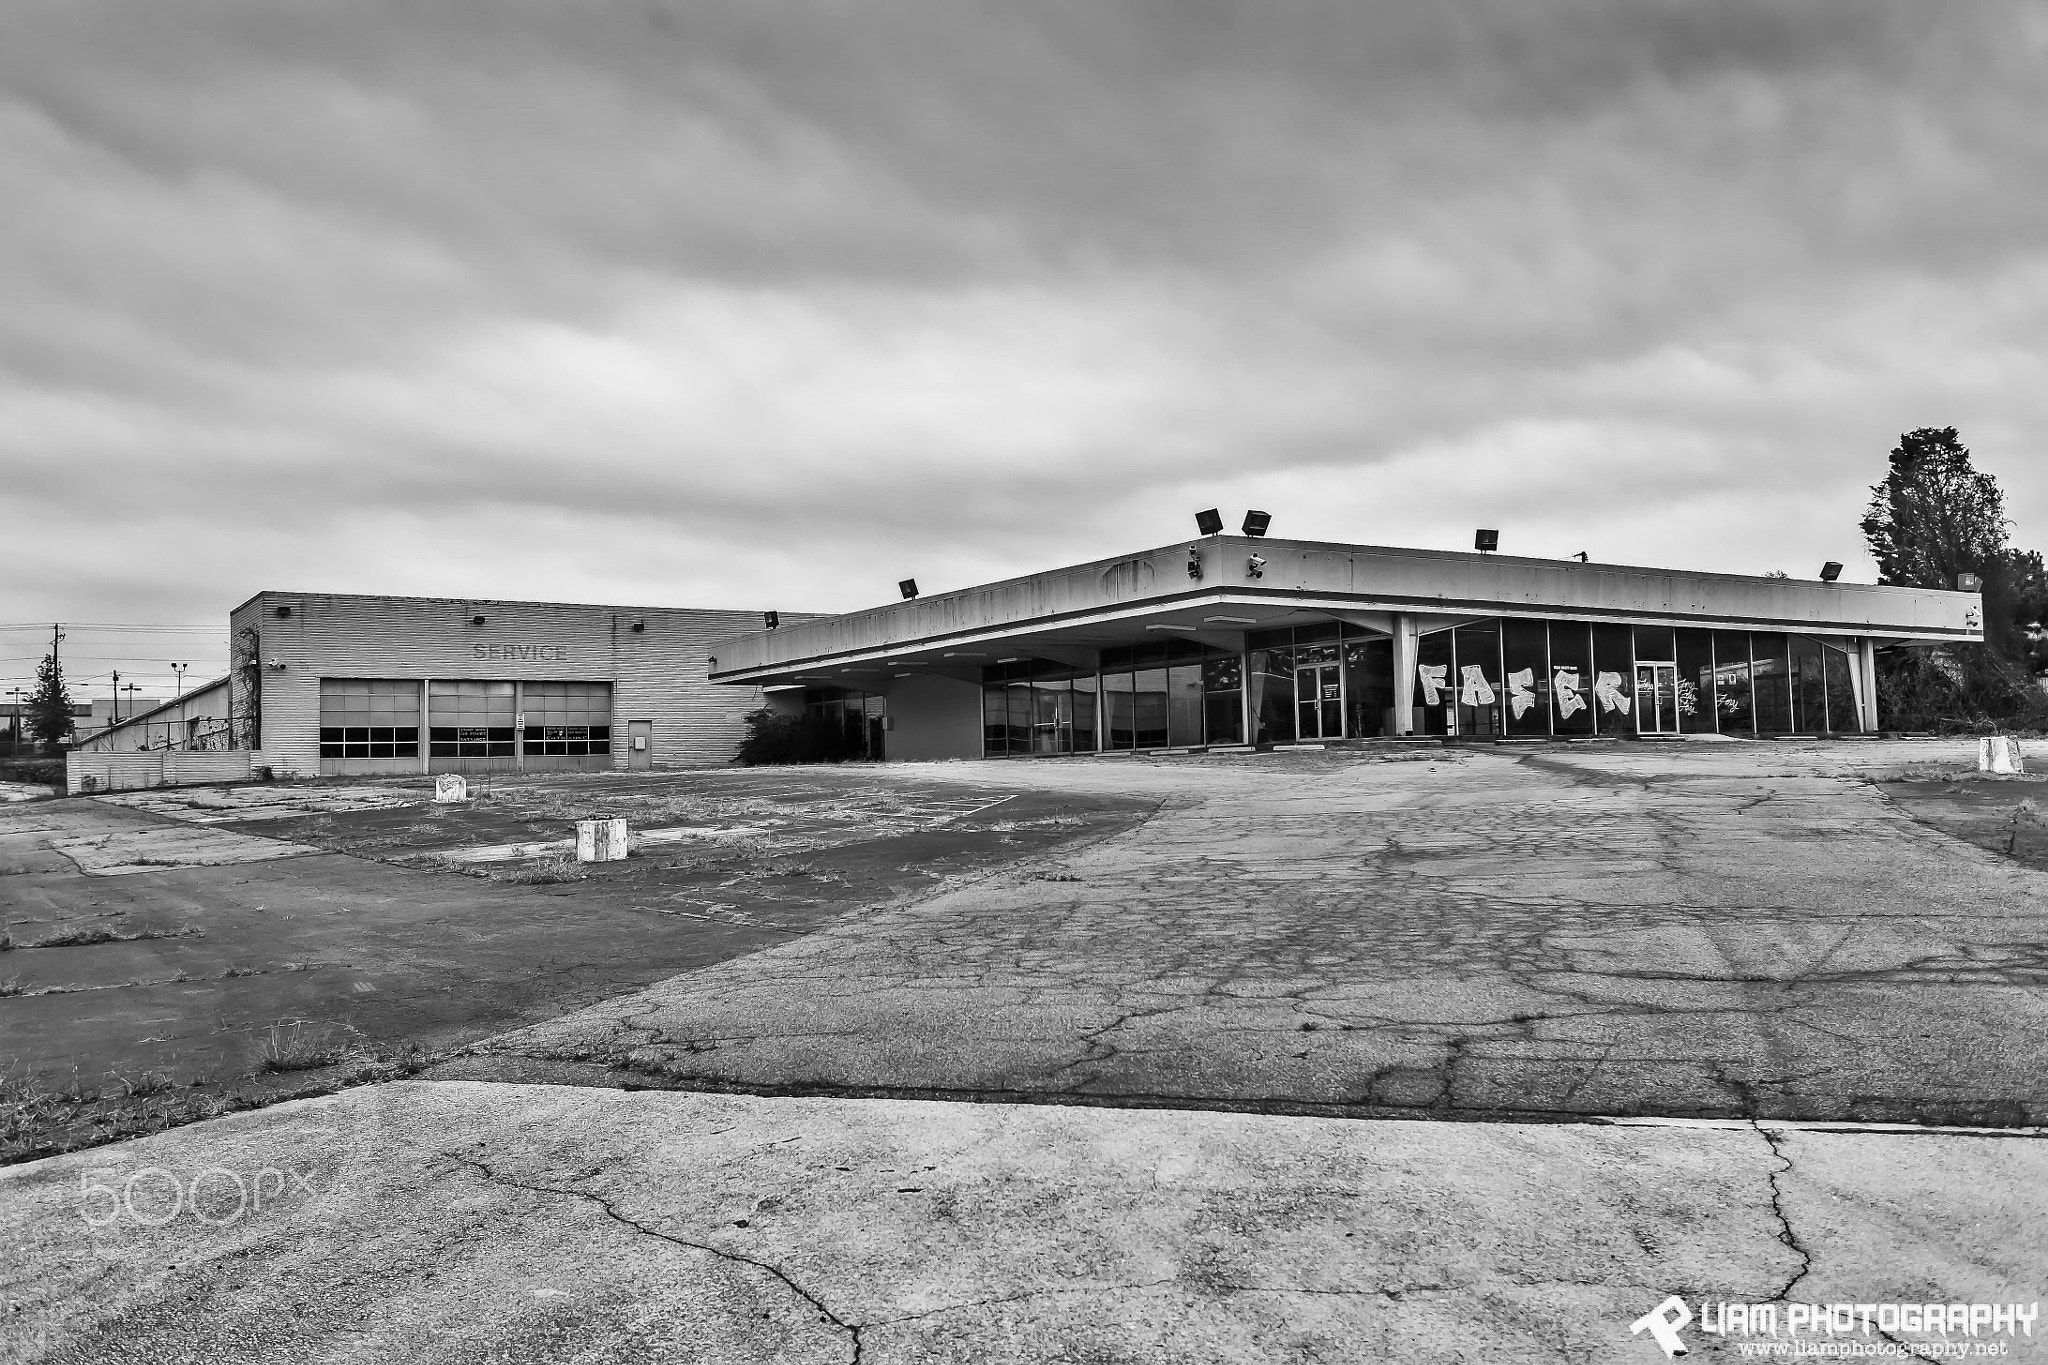 Abandoned Chevrolet Dealership - I shot this in Decatur ...